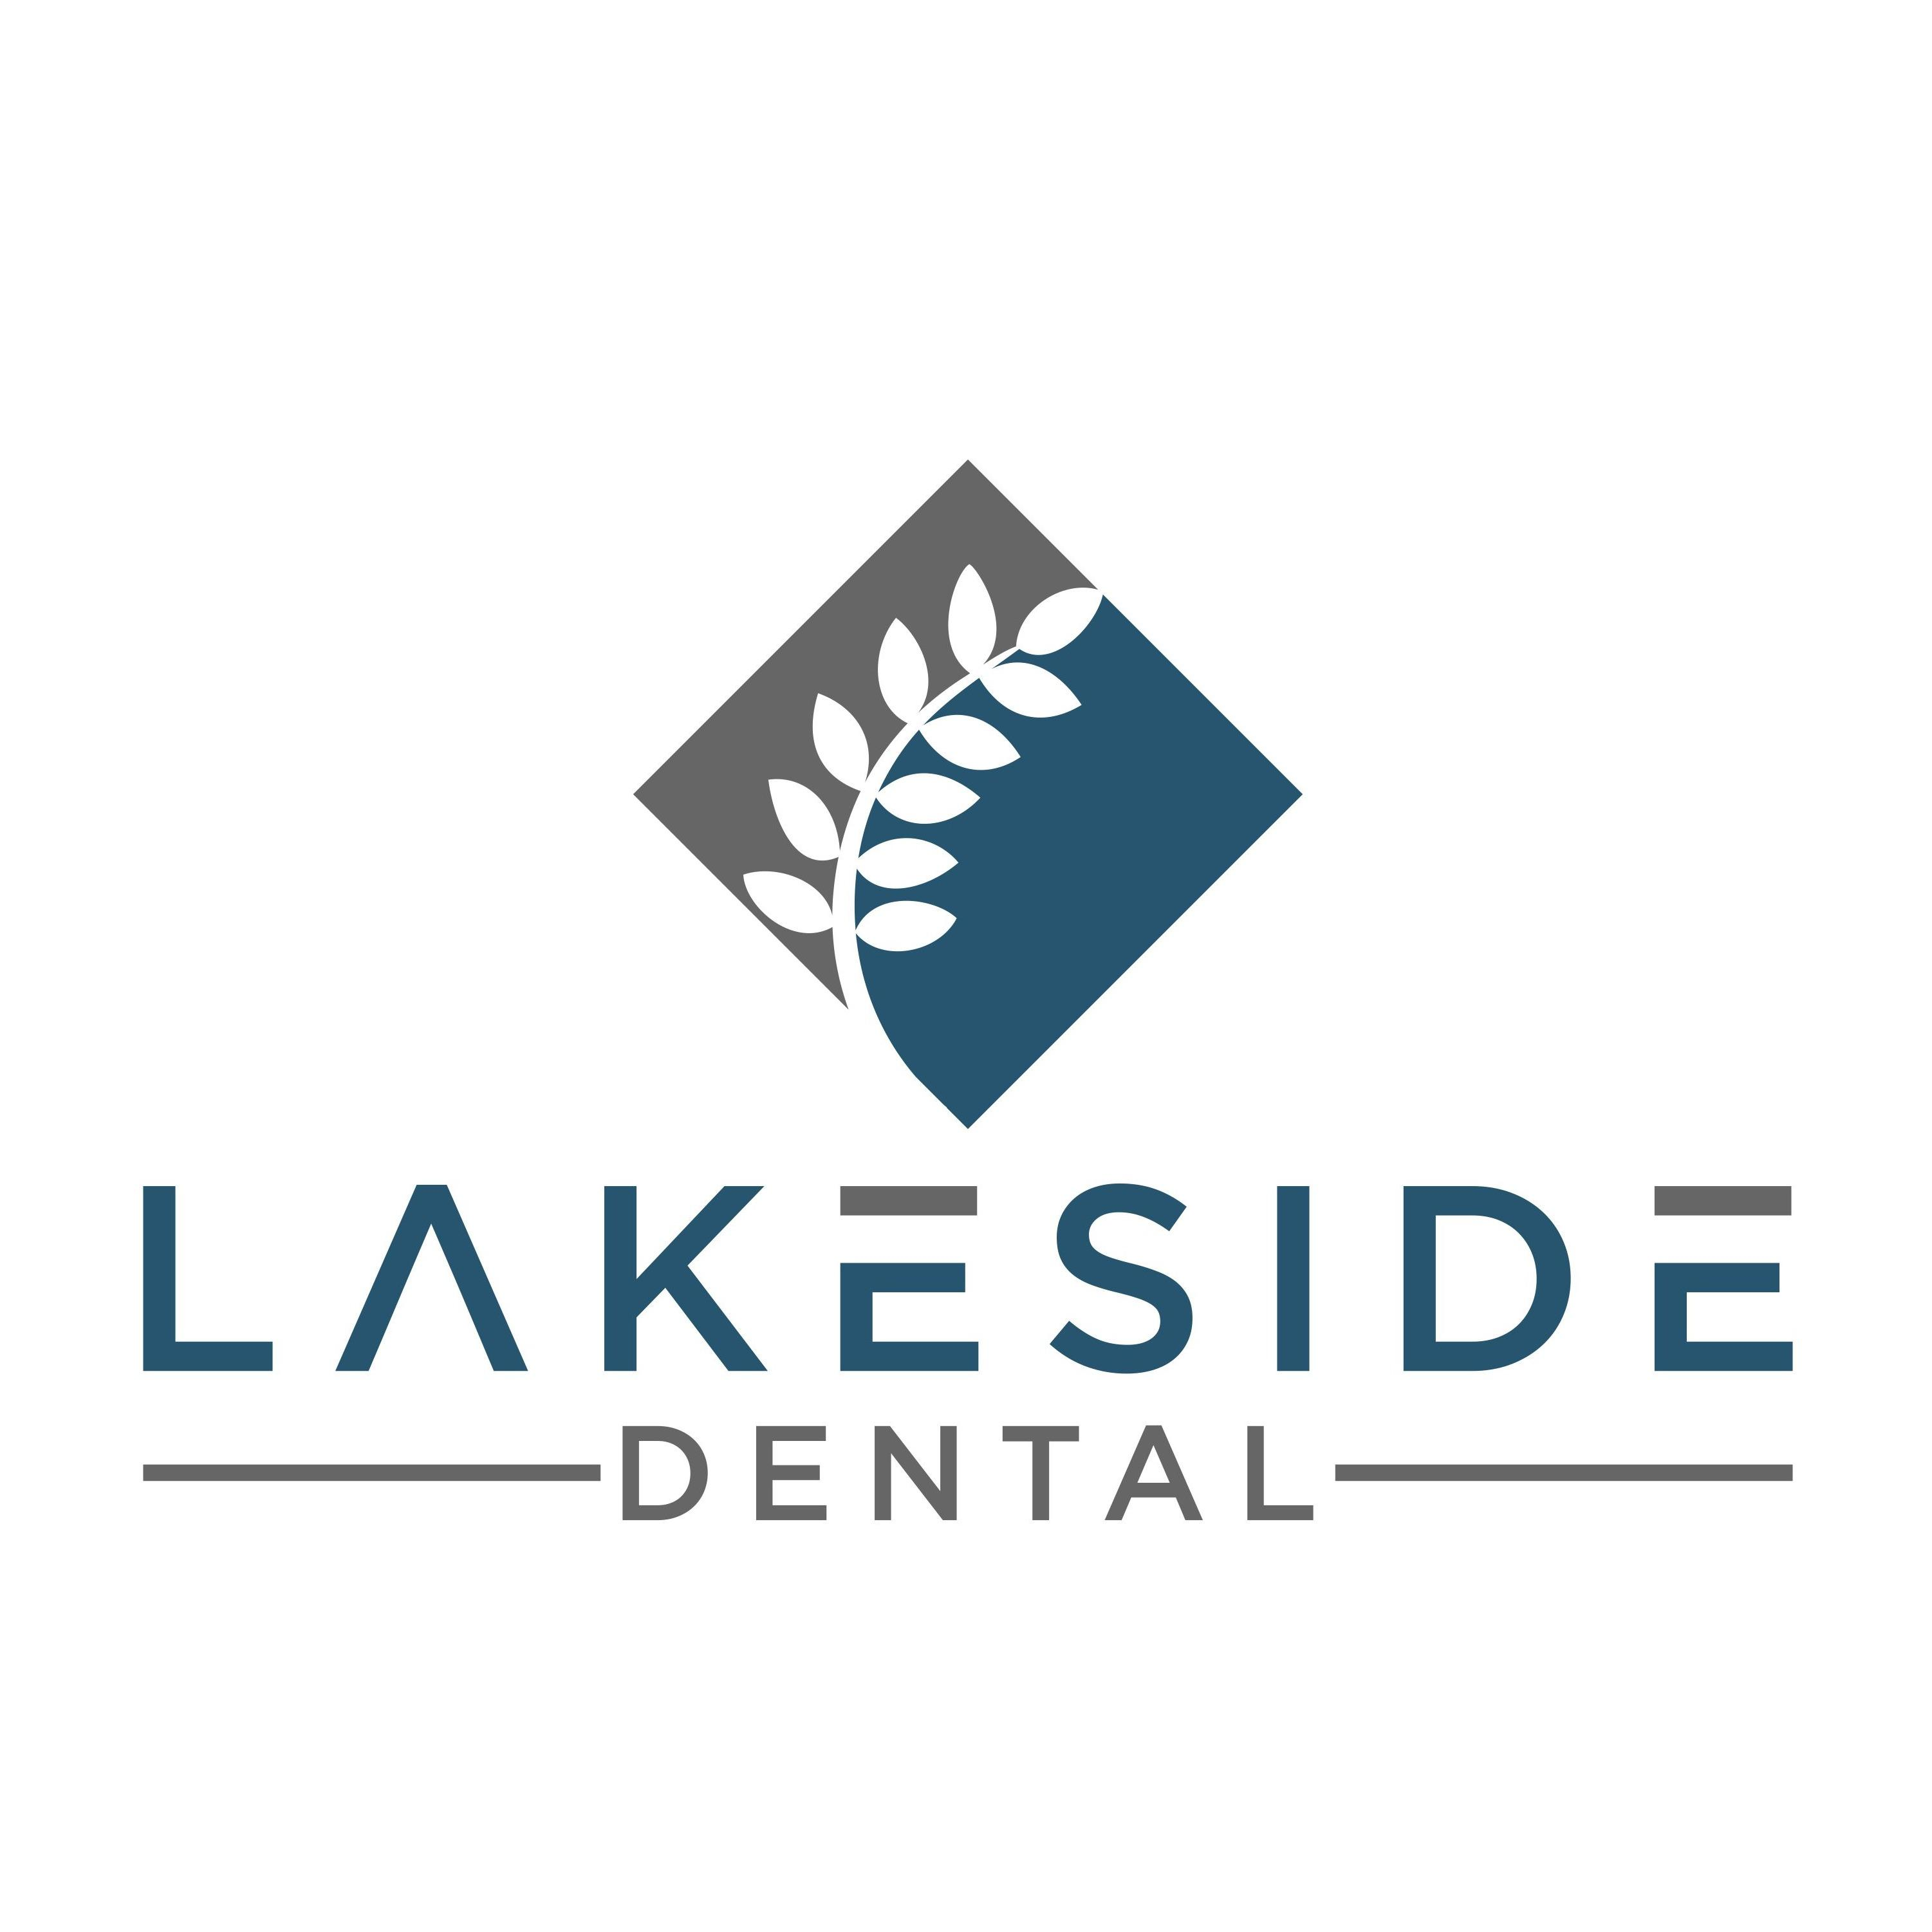 Lakeside Dental - Pleasant Hill, IA - Dentists & Dental Services